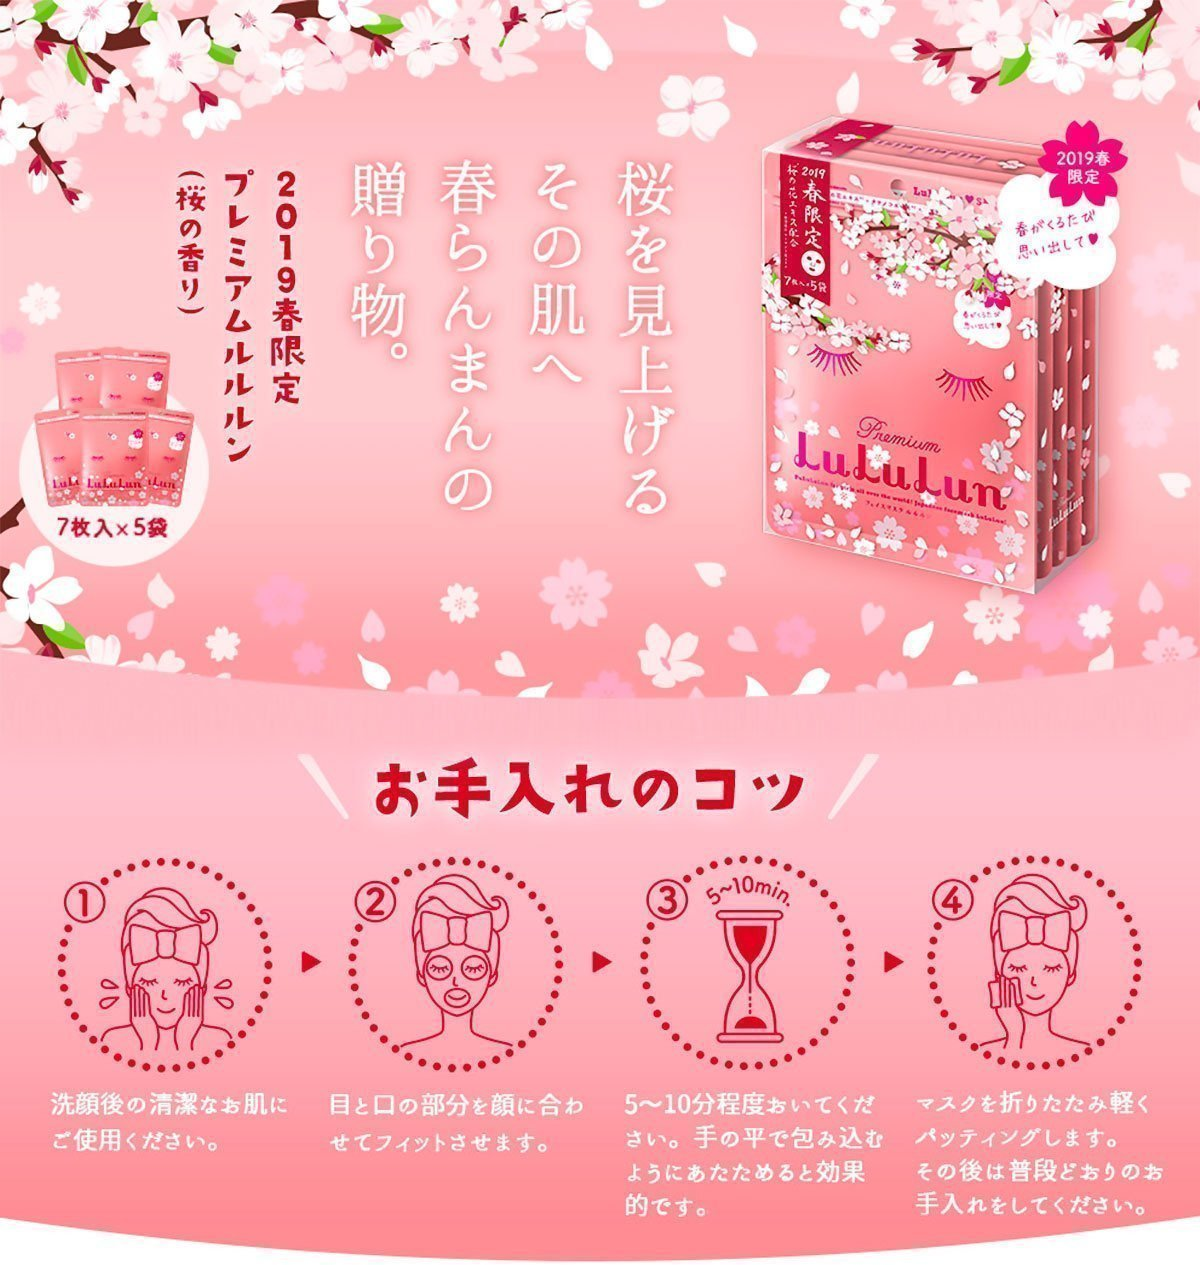 LULULUN Sakura Moisturising Serum Face Masks Limited Edition Made in Japan